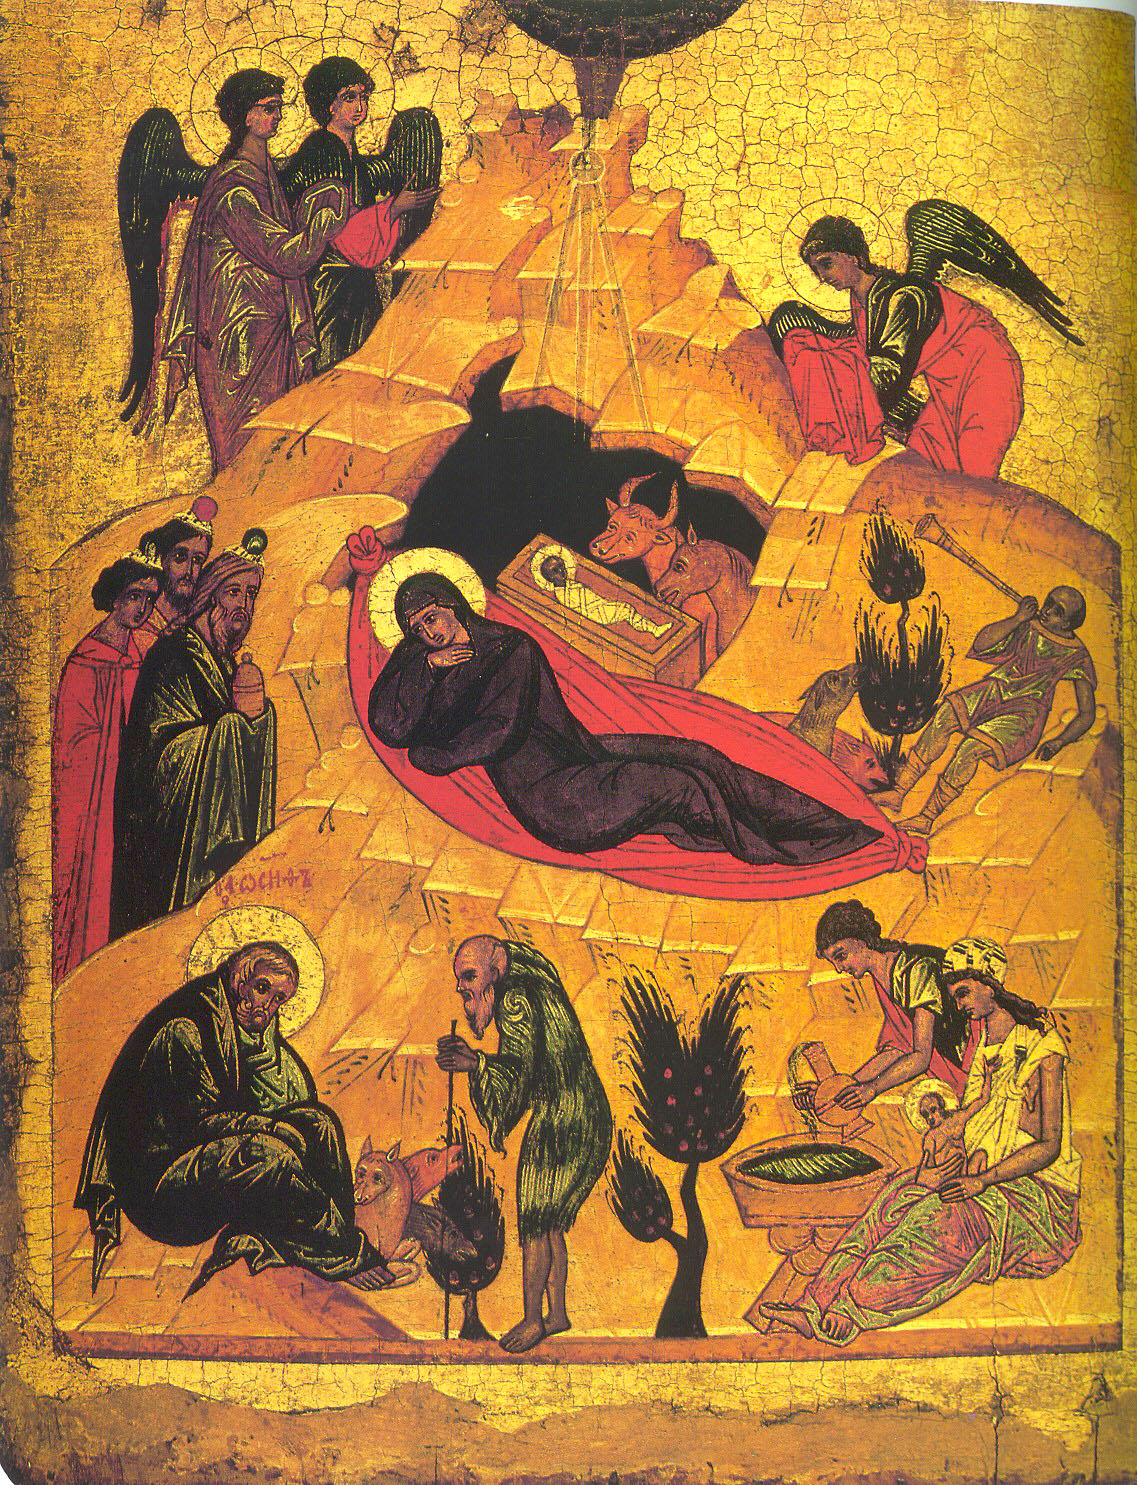 nativity-icon-incarnation-of-the-lord-jesus-christ-222